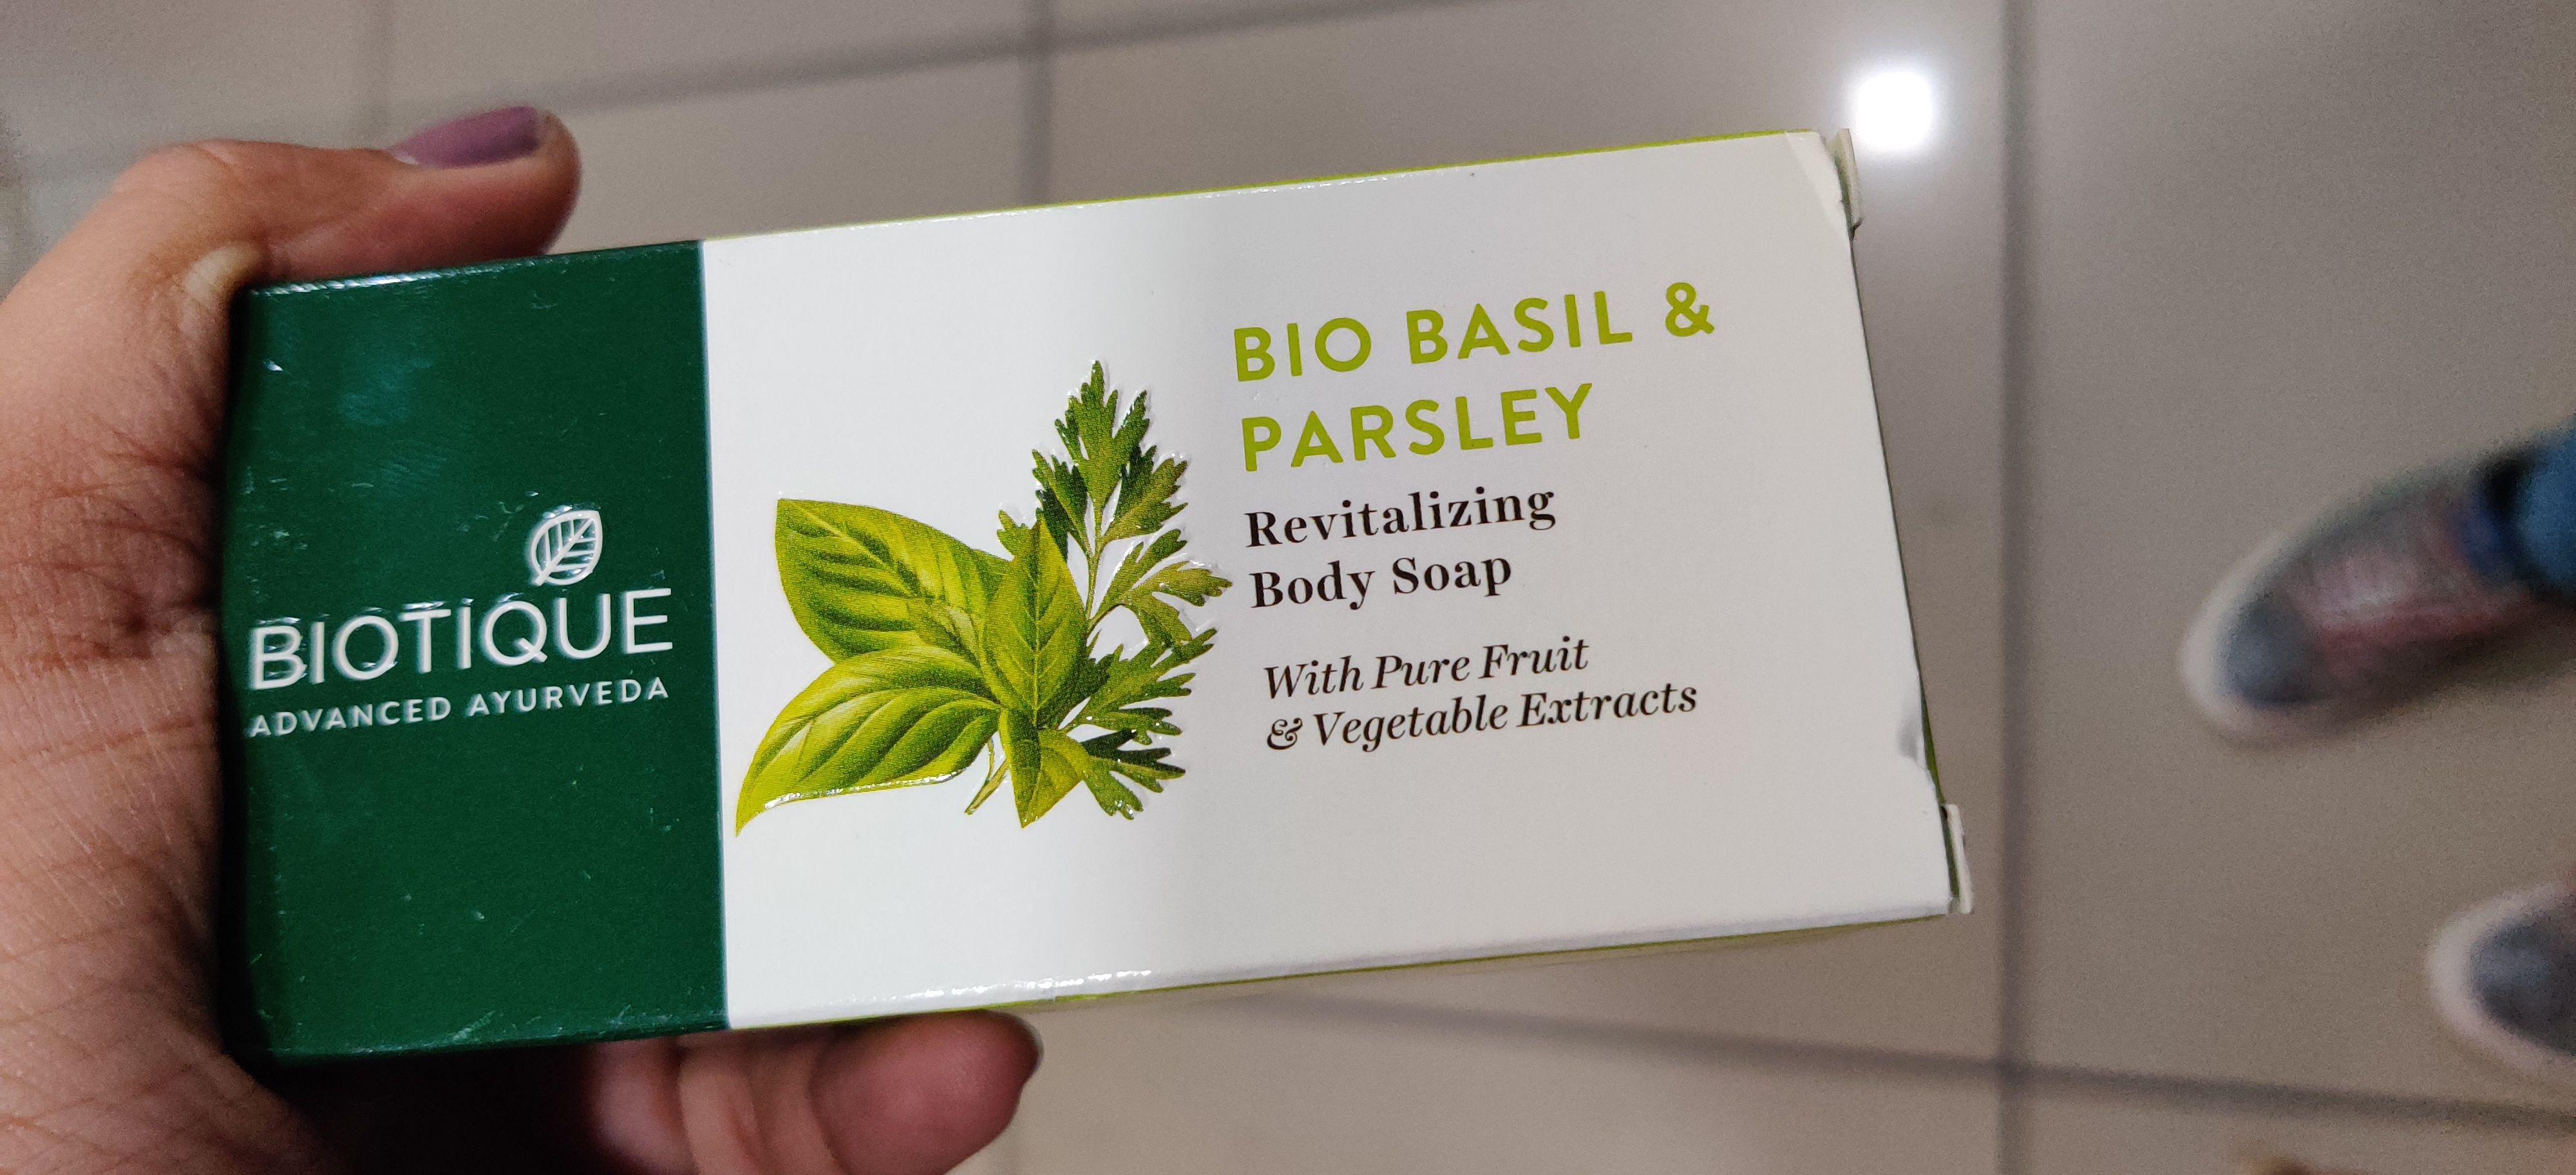 Biotique Bio Basil And Parsley Revitalizing Body Soap-Nourishing Soap!!-By qwerty12345